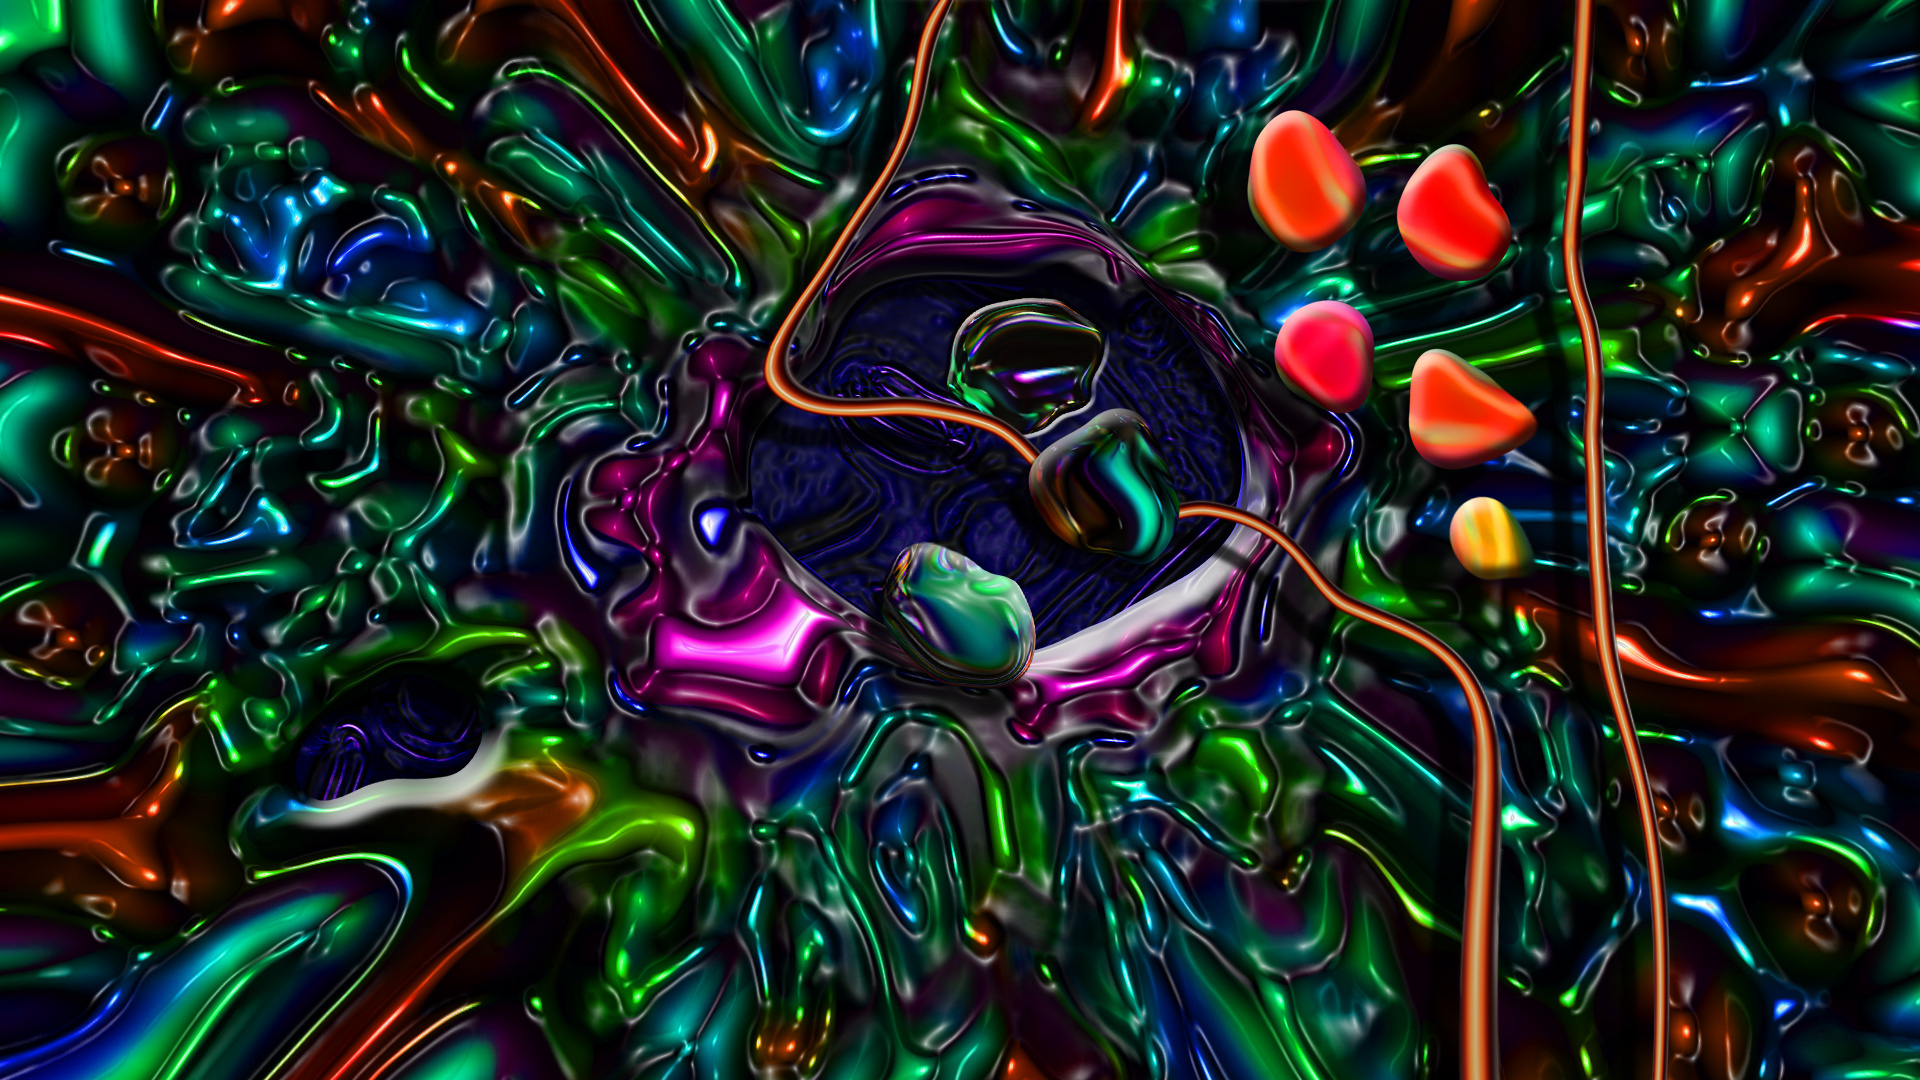 Miscellaneous Digital Art Trippy Colorful Picture 1920x1080